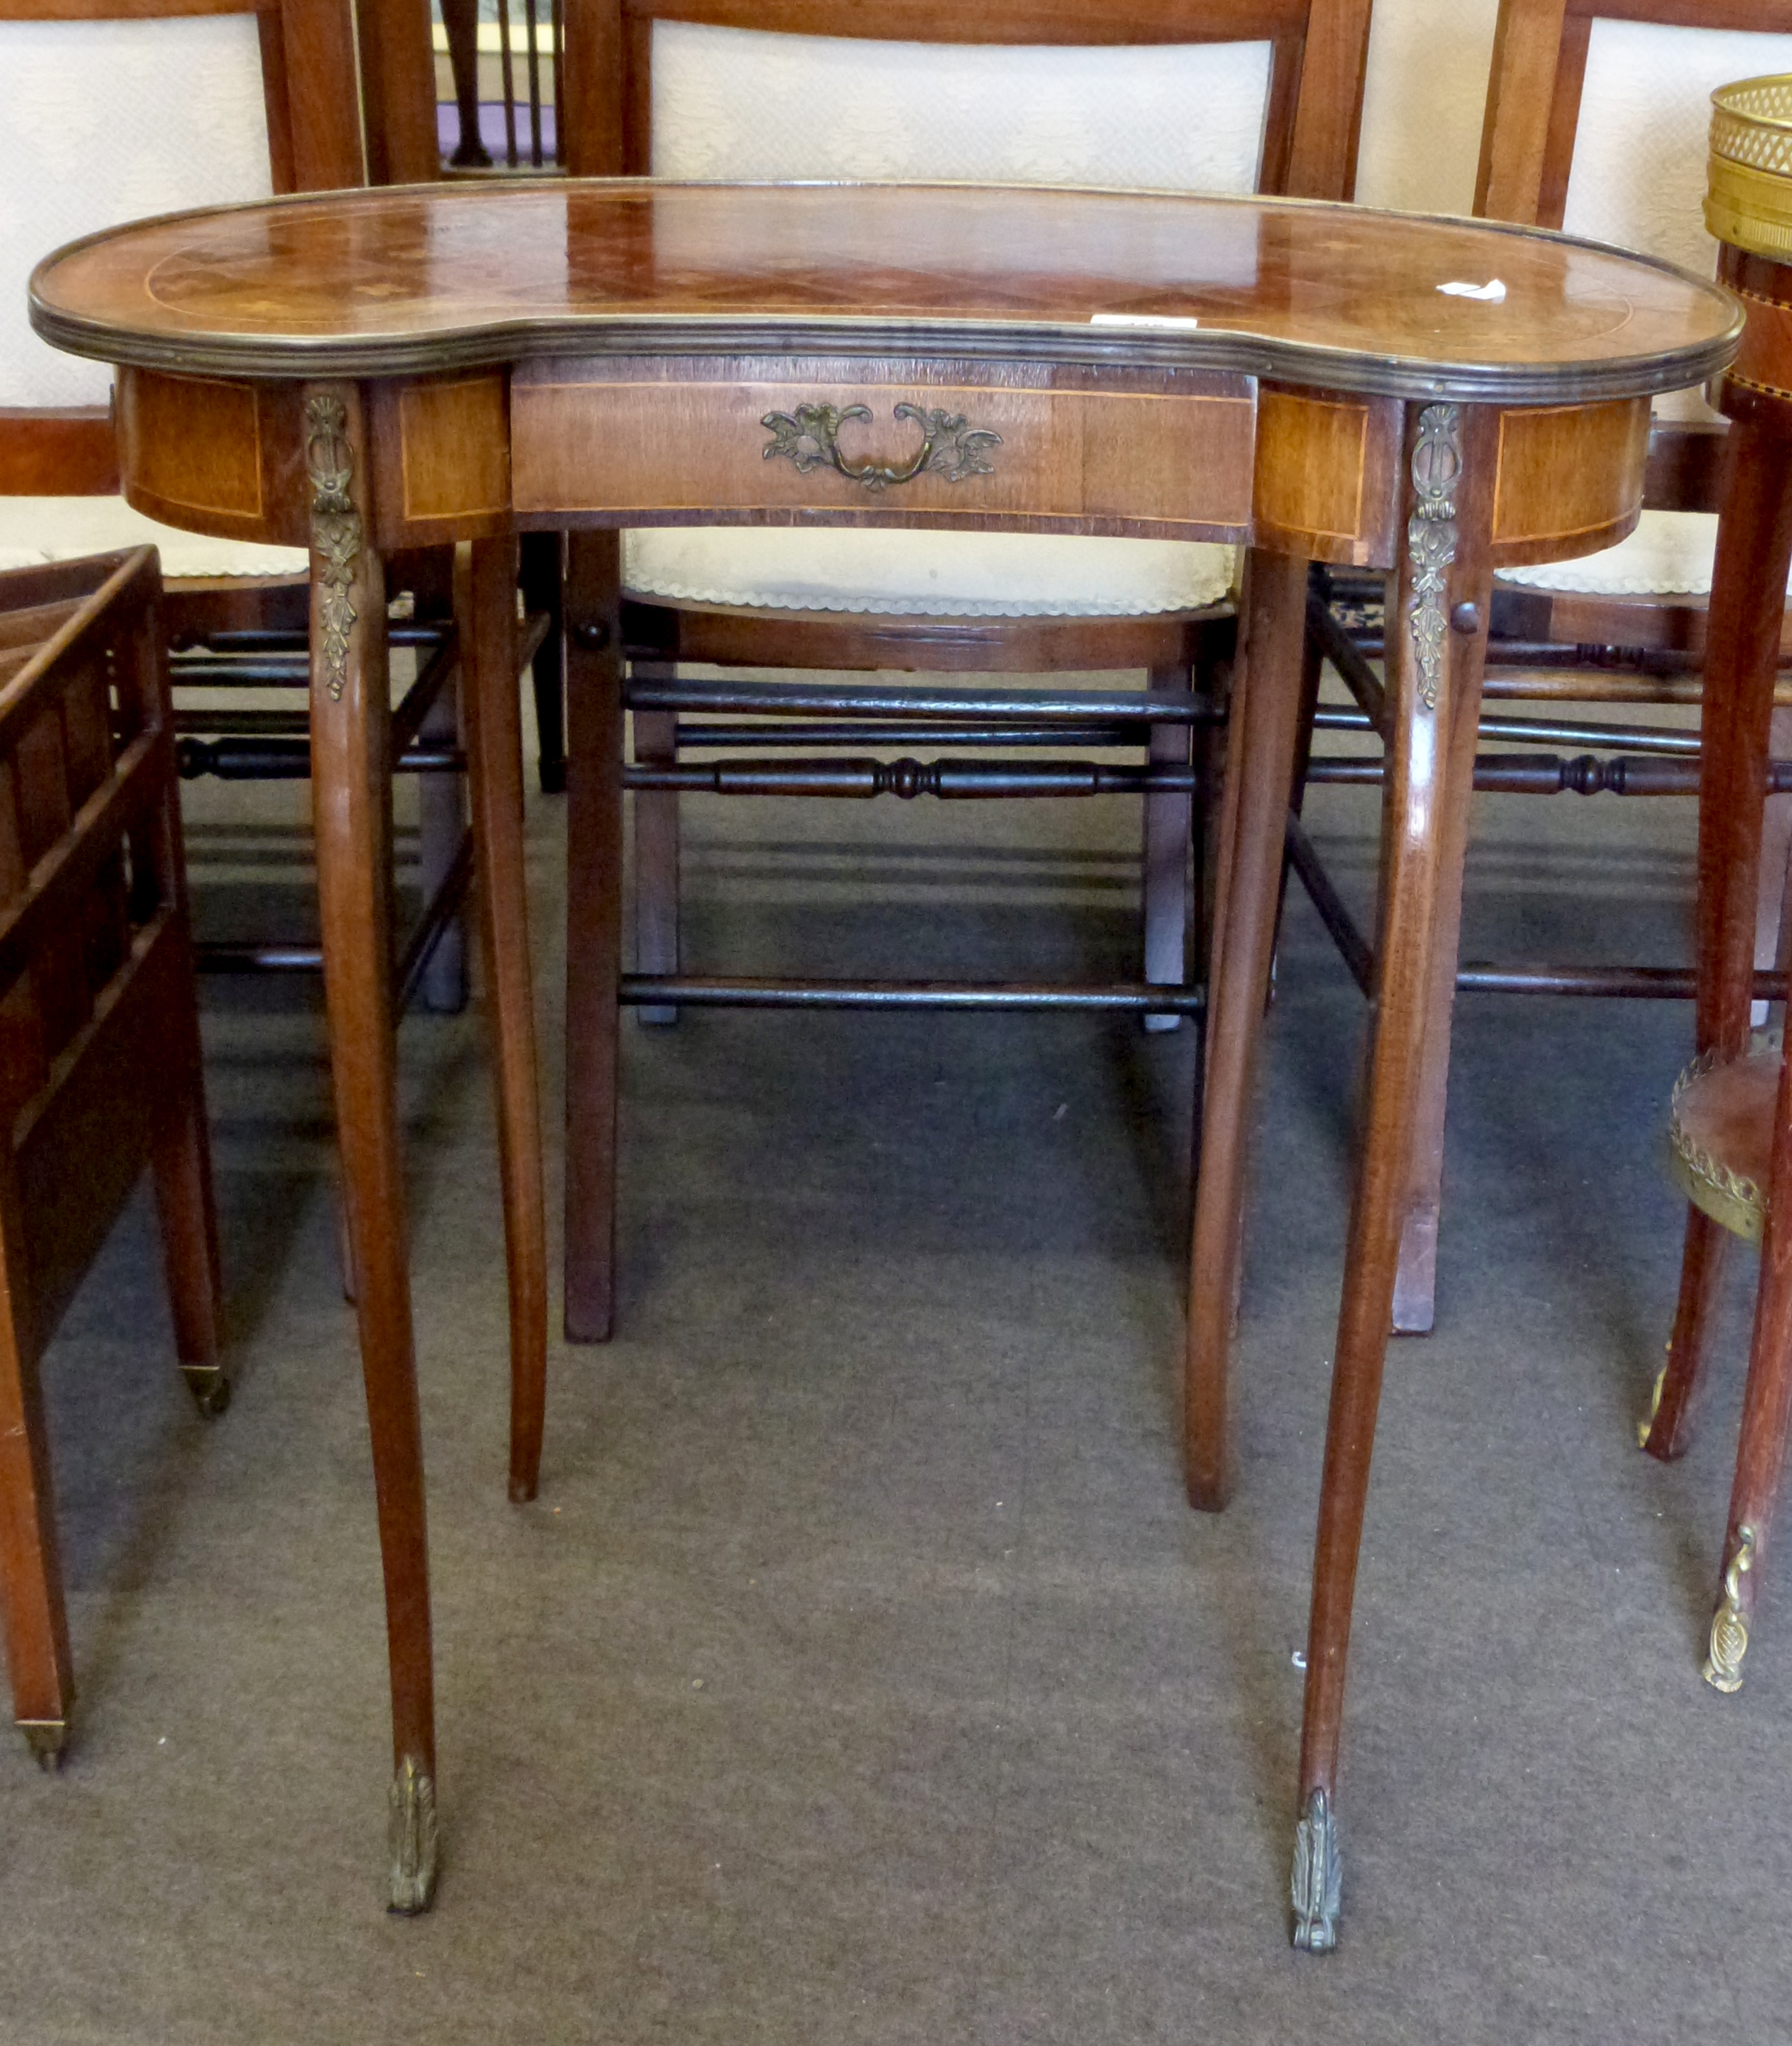 Small kidney shaped side table with drawer beneath and inlaid decoration, height approx 69cm - Image 2 of 3